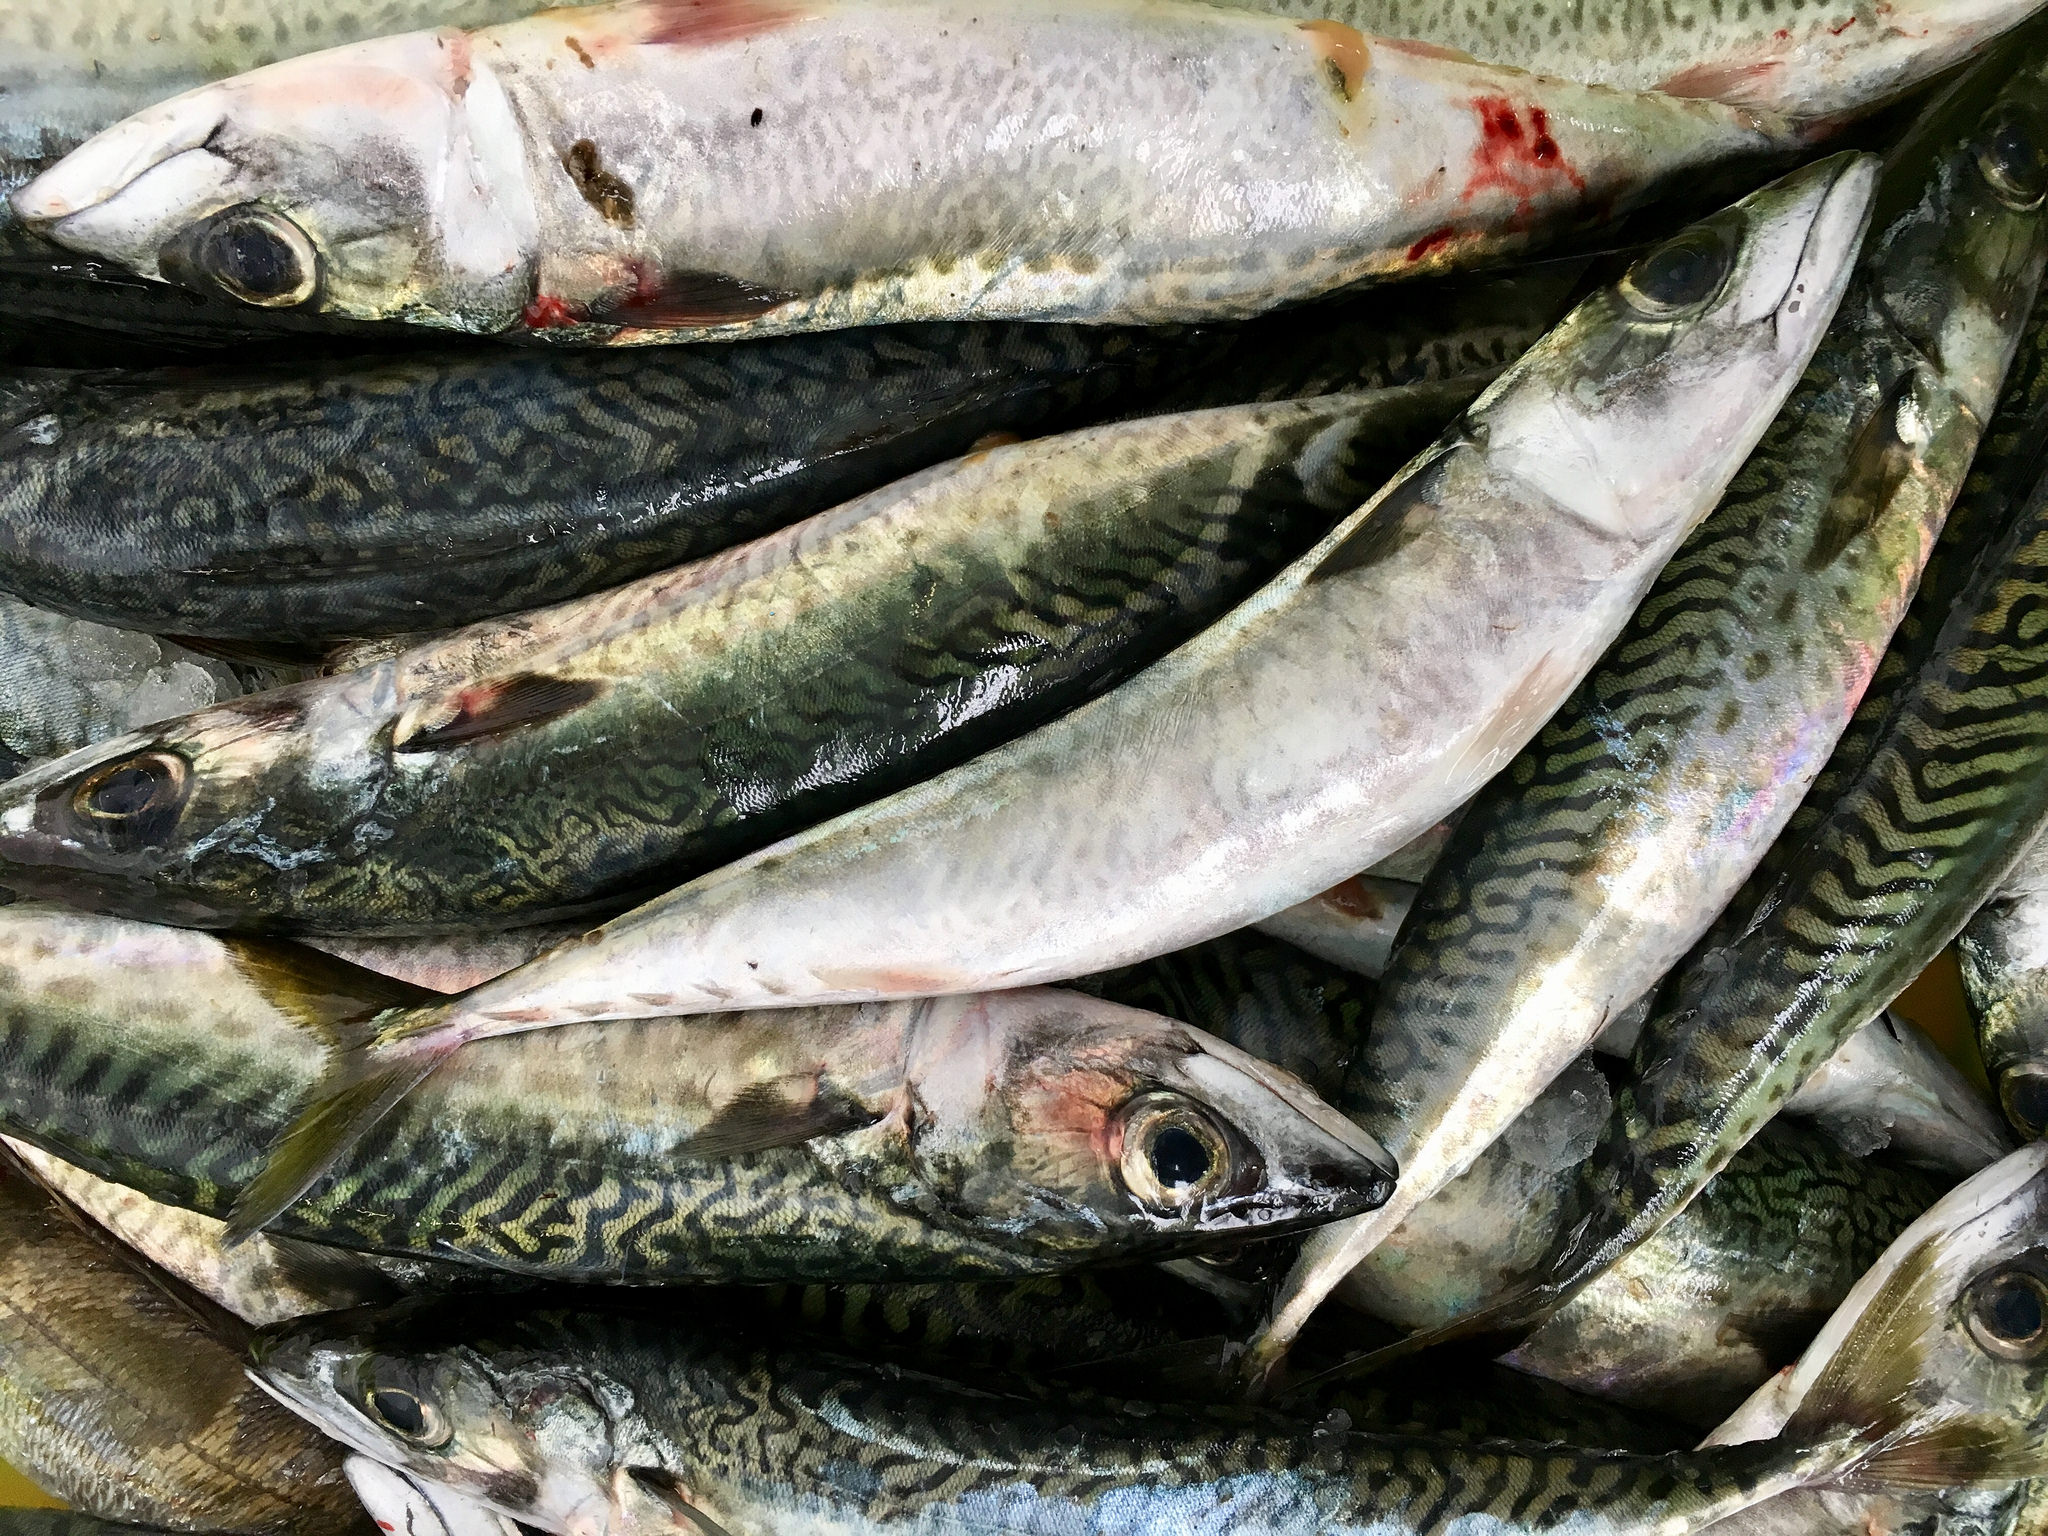 East Coast Mackerel Fishery Restricted Due to Fishermen Exceeding Limits on Other Species